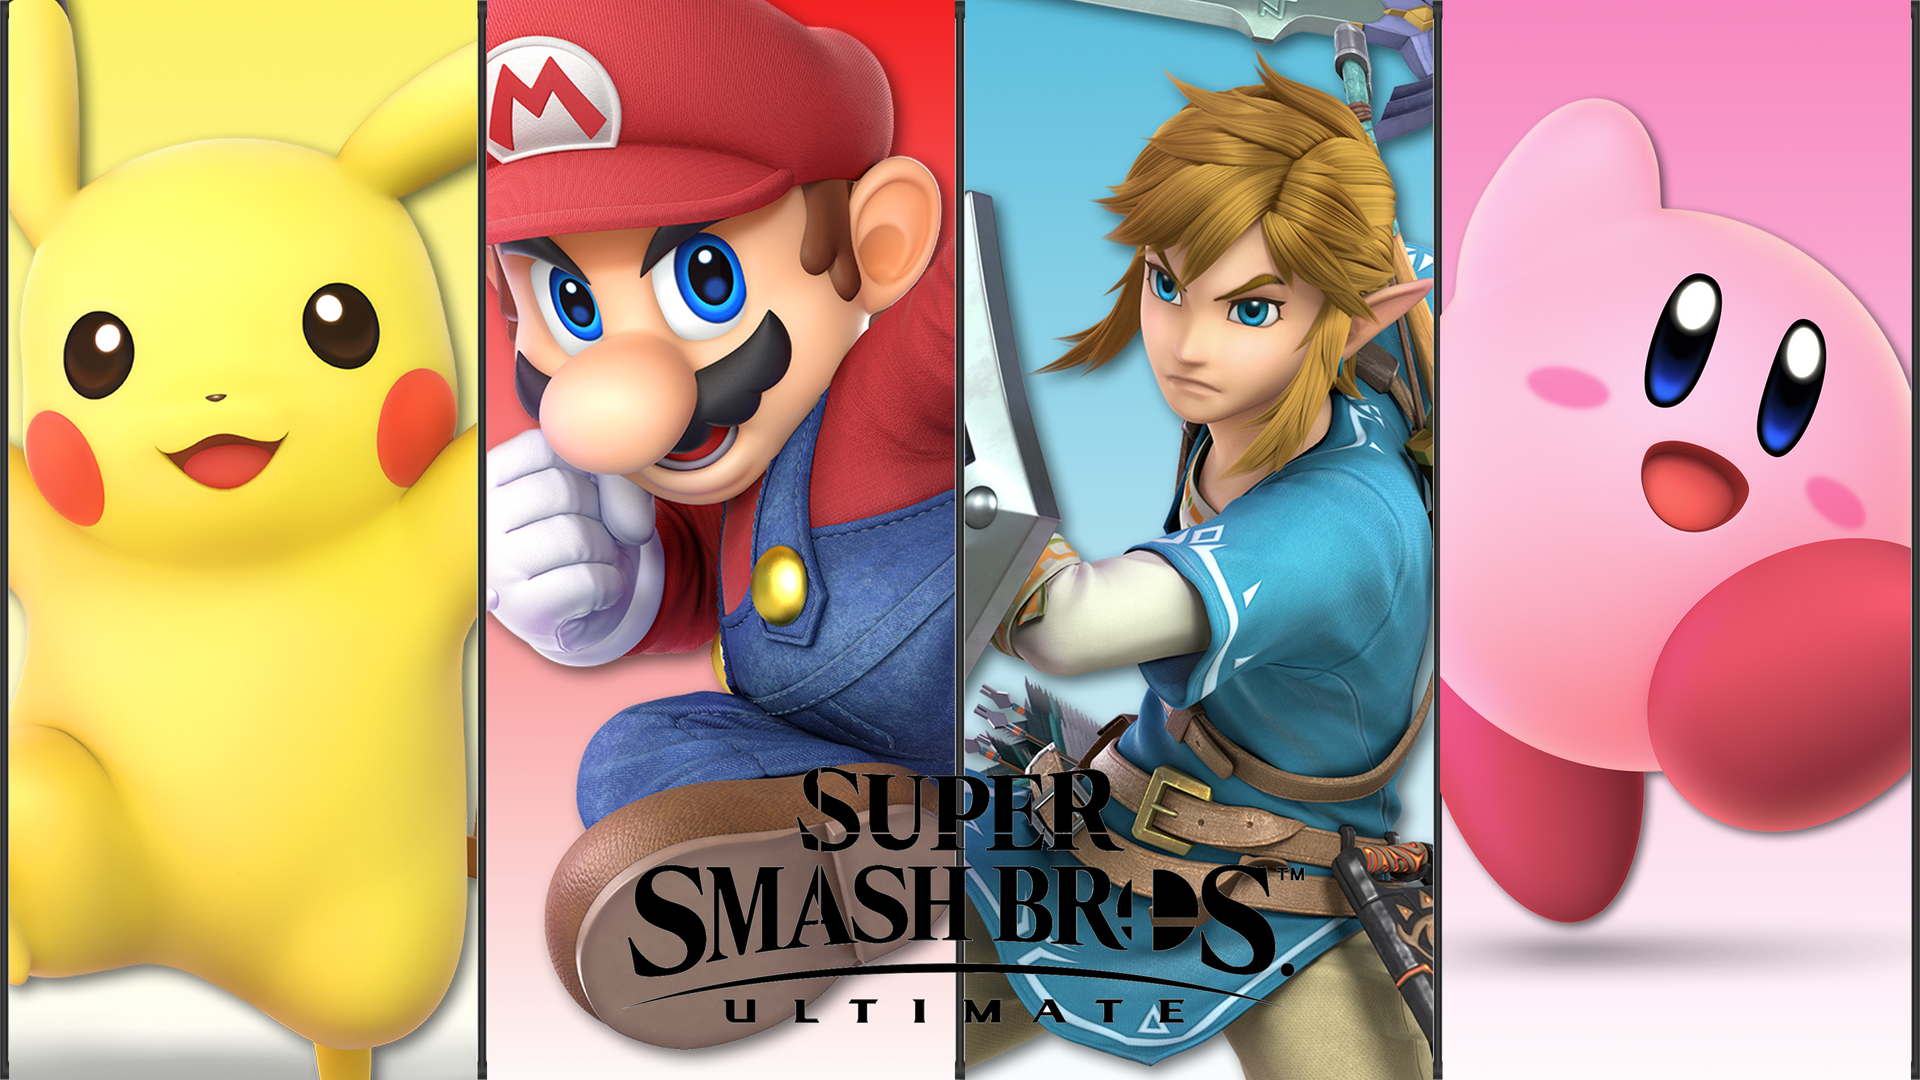 Super Smash Bros Ultimate Wallpaper 1 By 64smashmaster3ds On